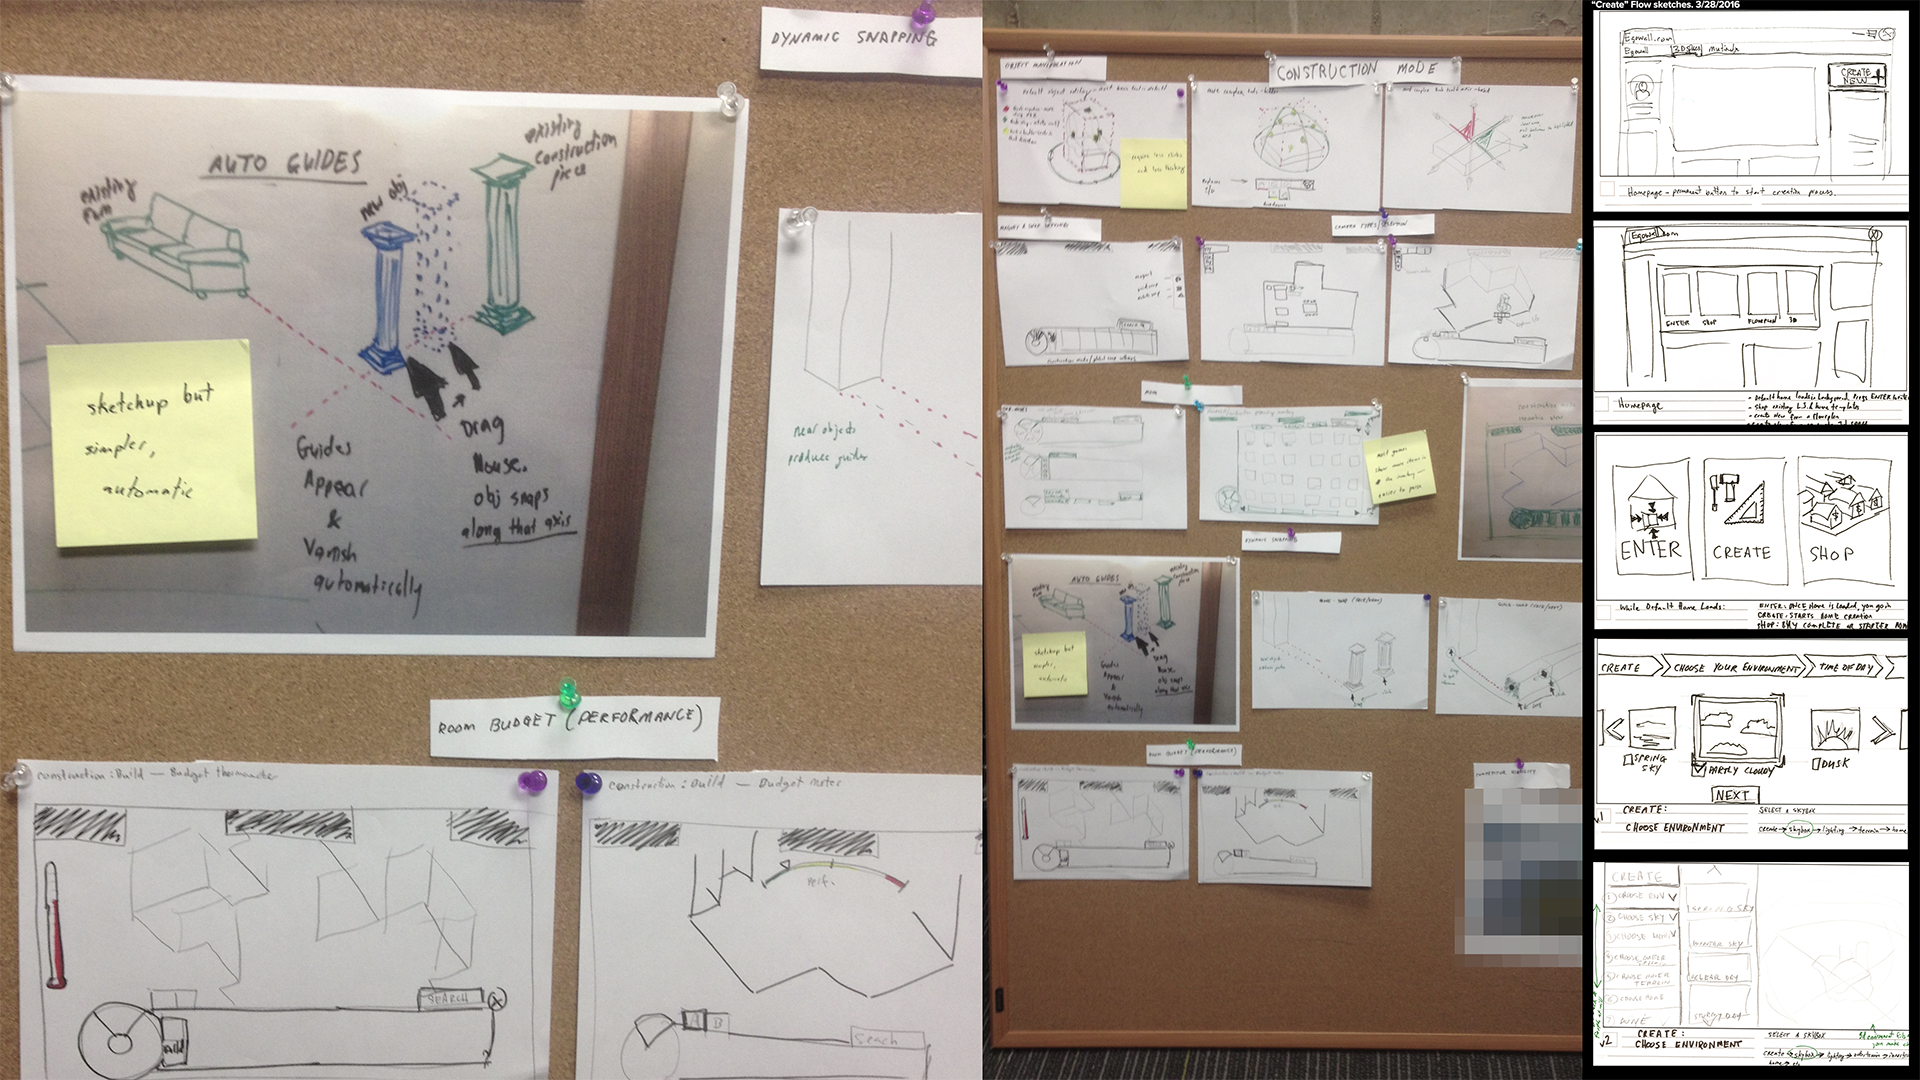 Image of potential user interactions and wireframe sketches.